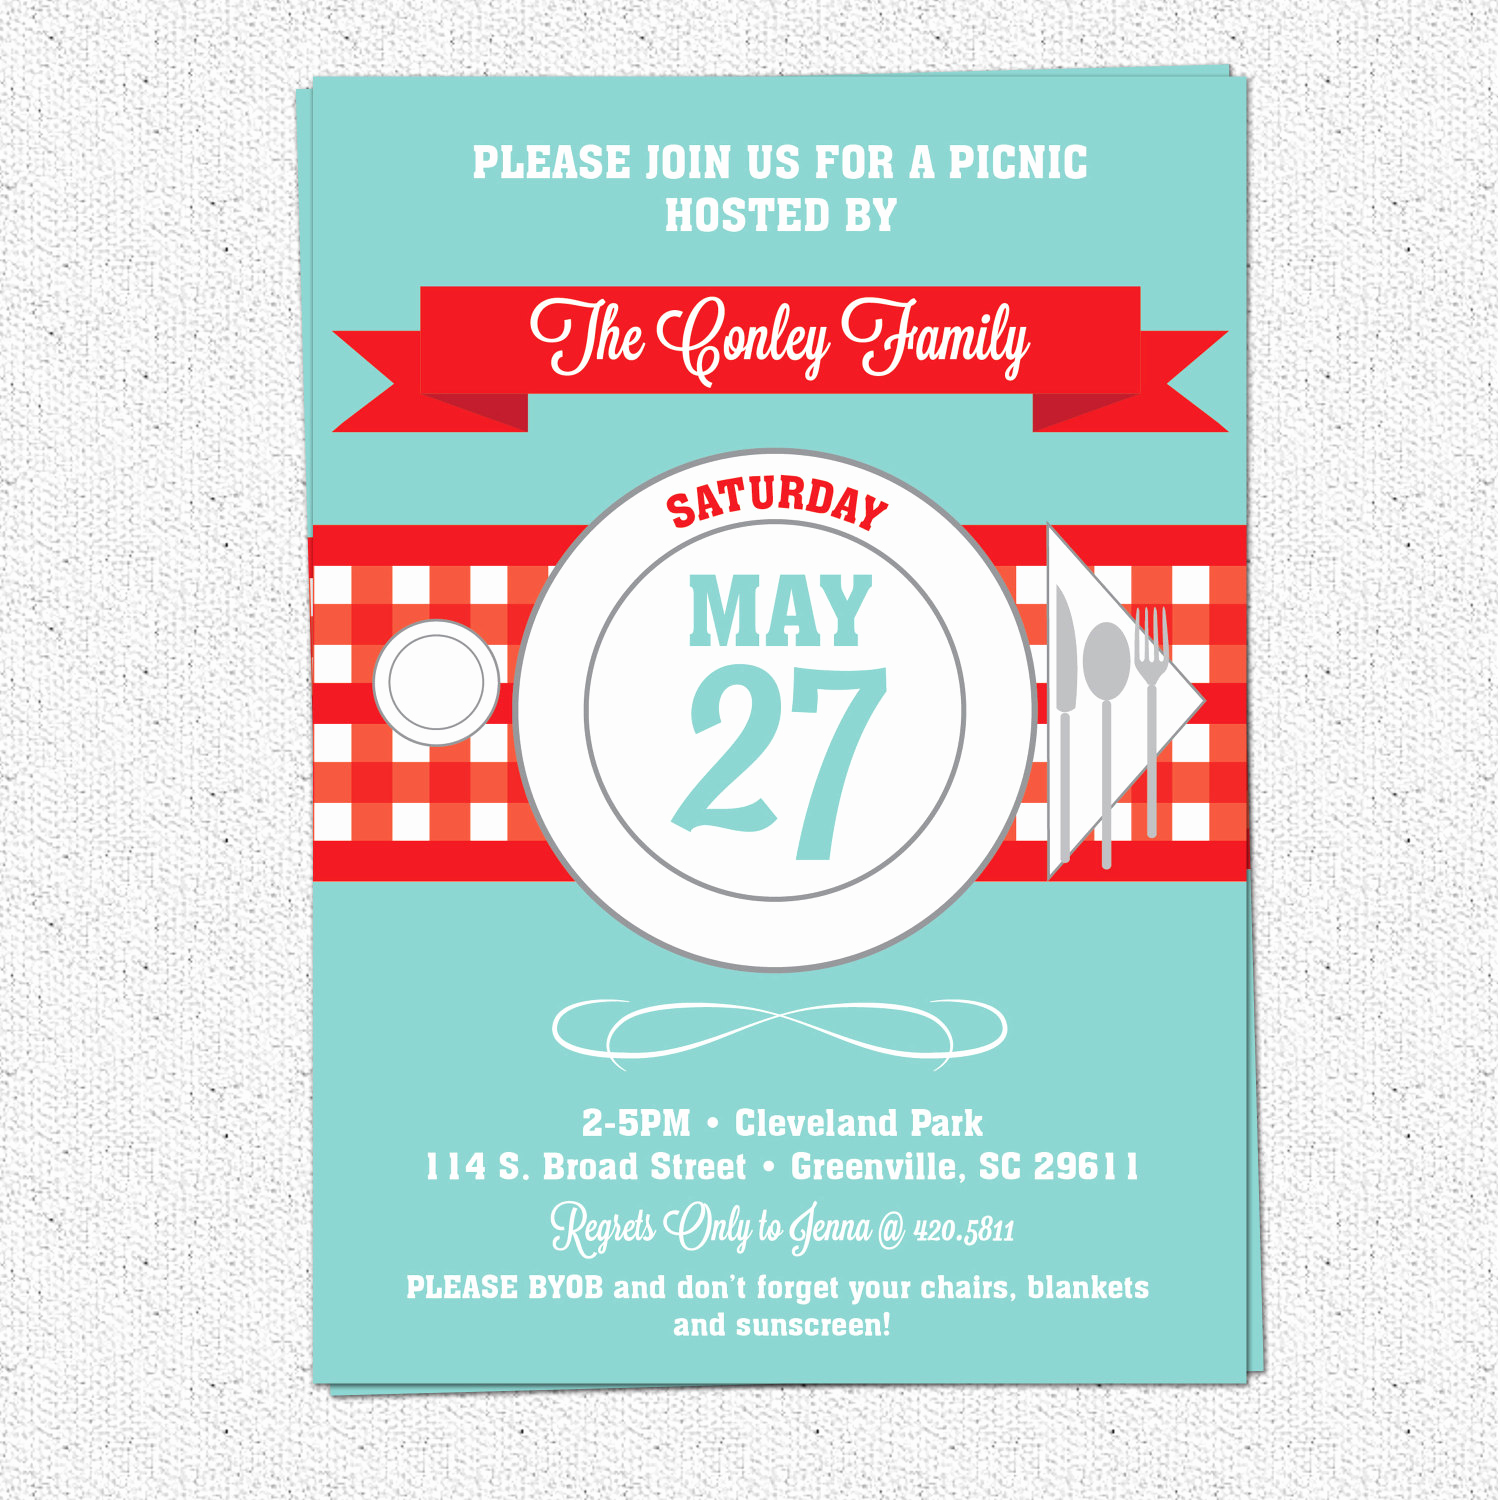 Picnic Invitation Templates Free Luxury Picnic Invitation Summer Bbq Barbecue July 4th Checkered